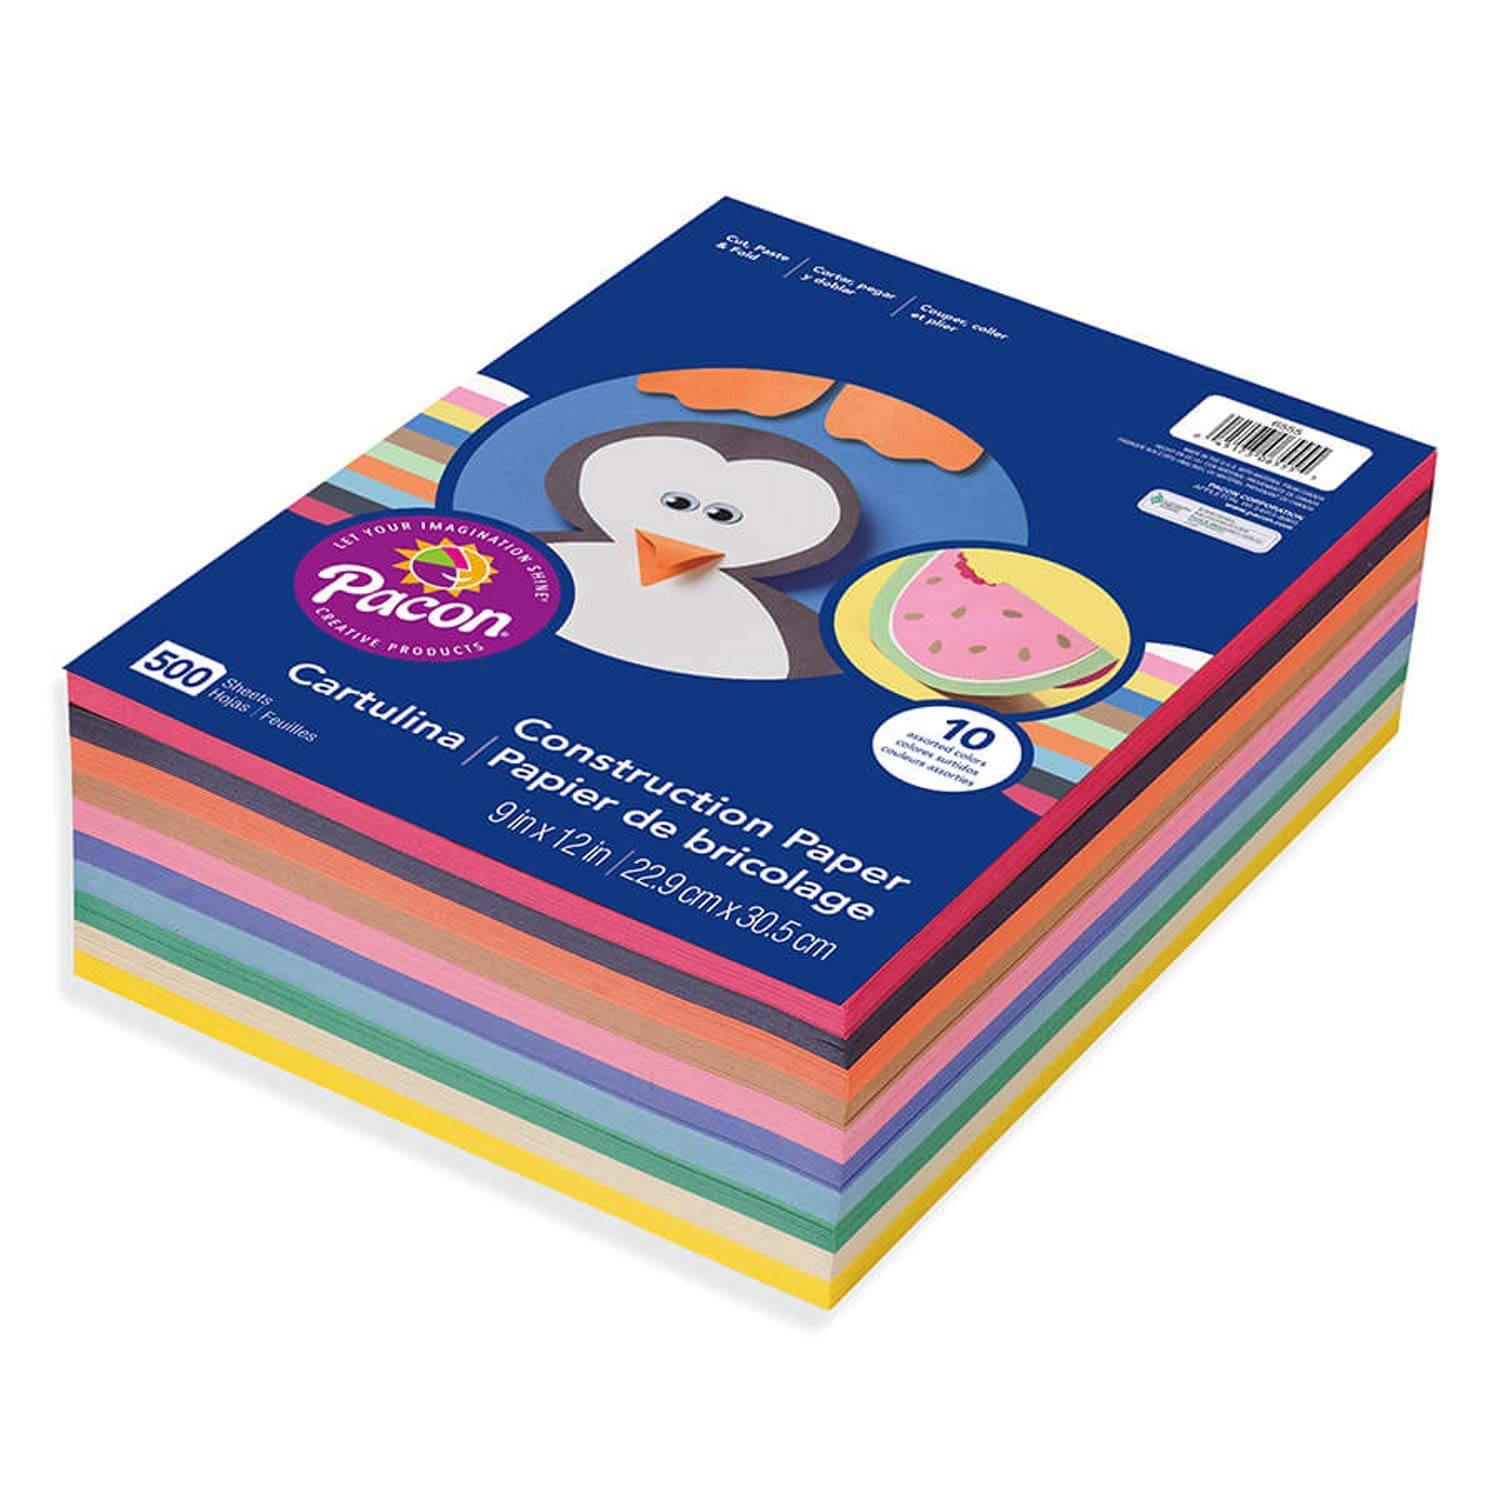 6555 Rainbow Super Value Construction Paper Ream Pacon 2 Pack 500 Sheets Assorted 9 x 12